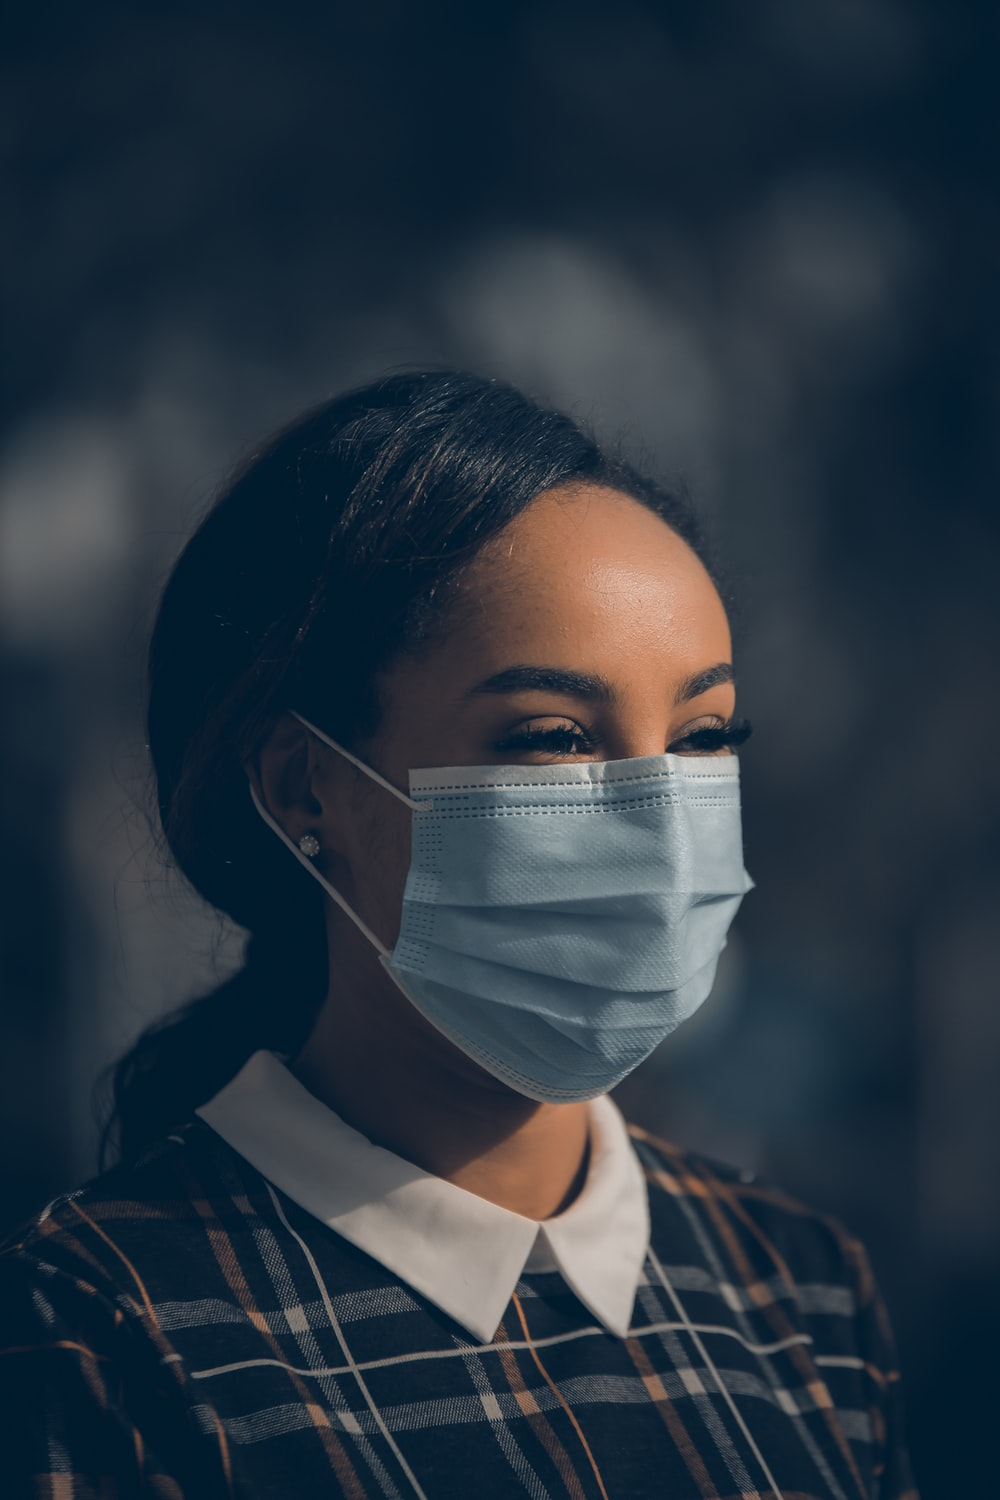 woman in black and white shirt with white face mask